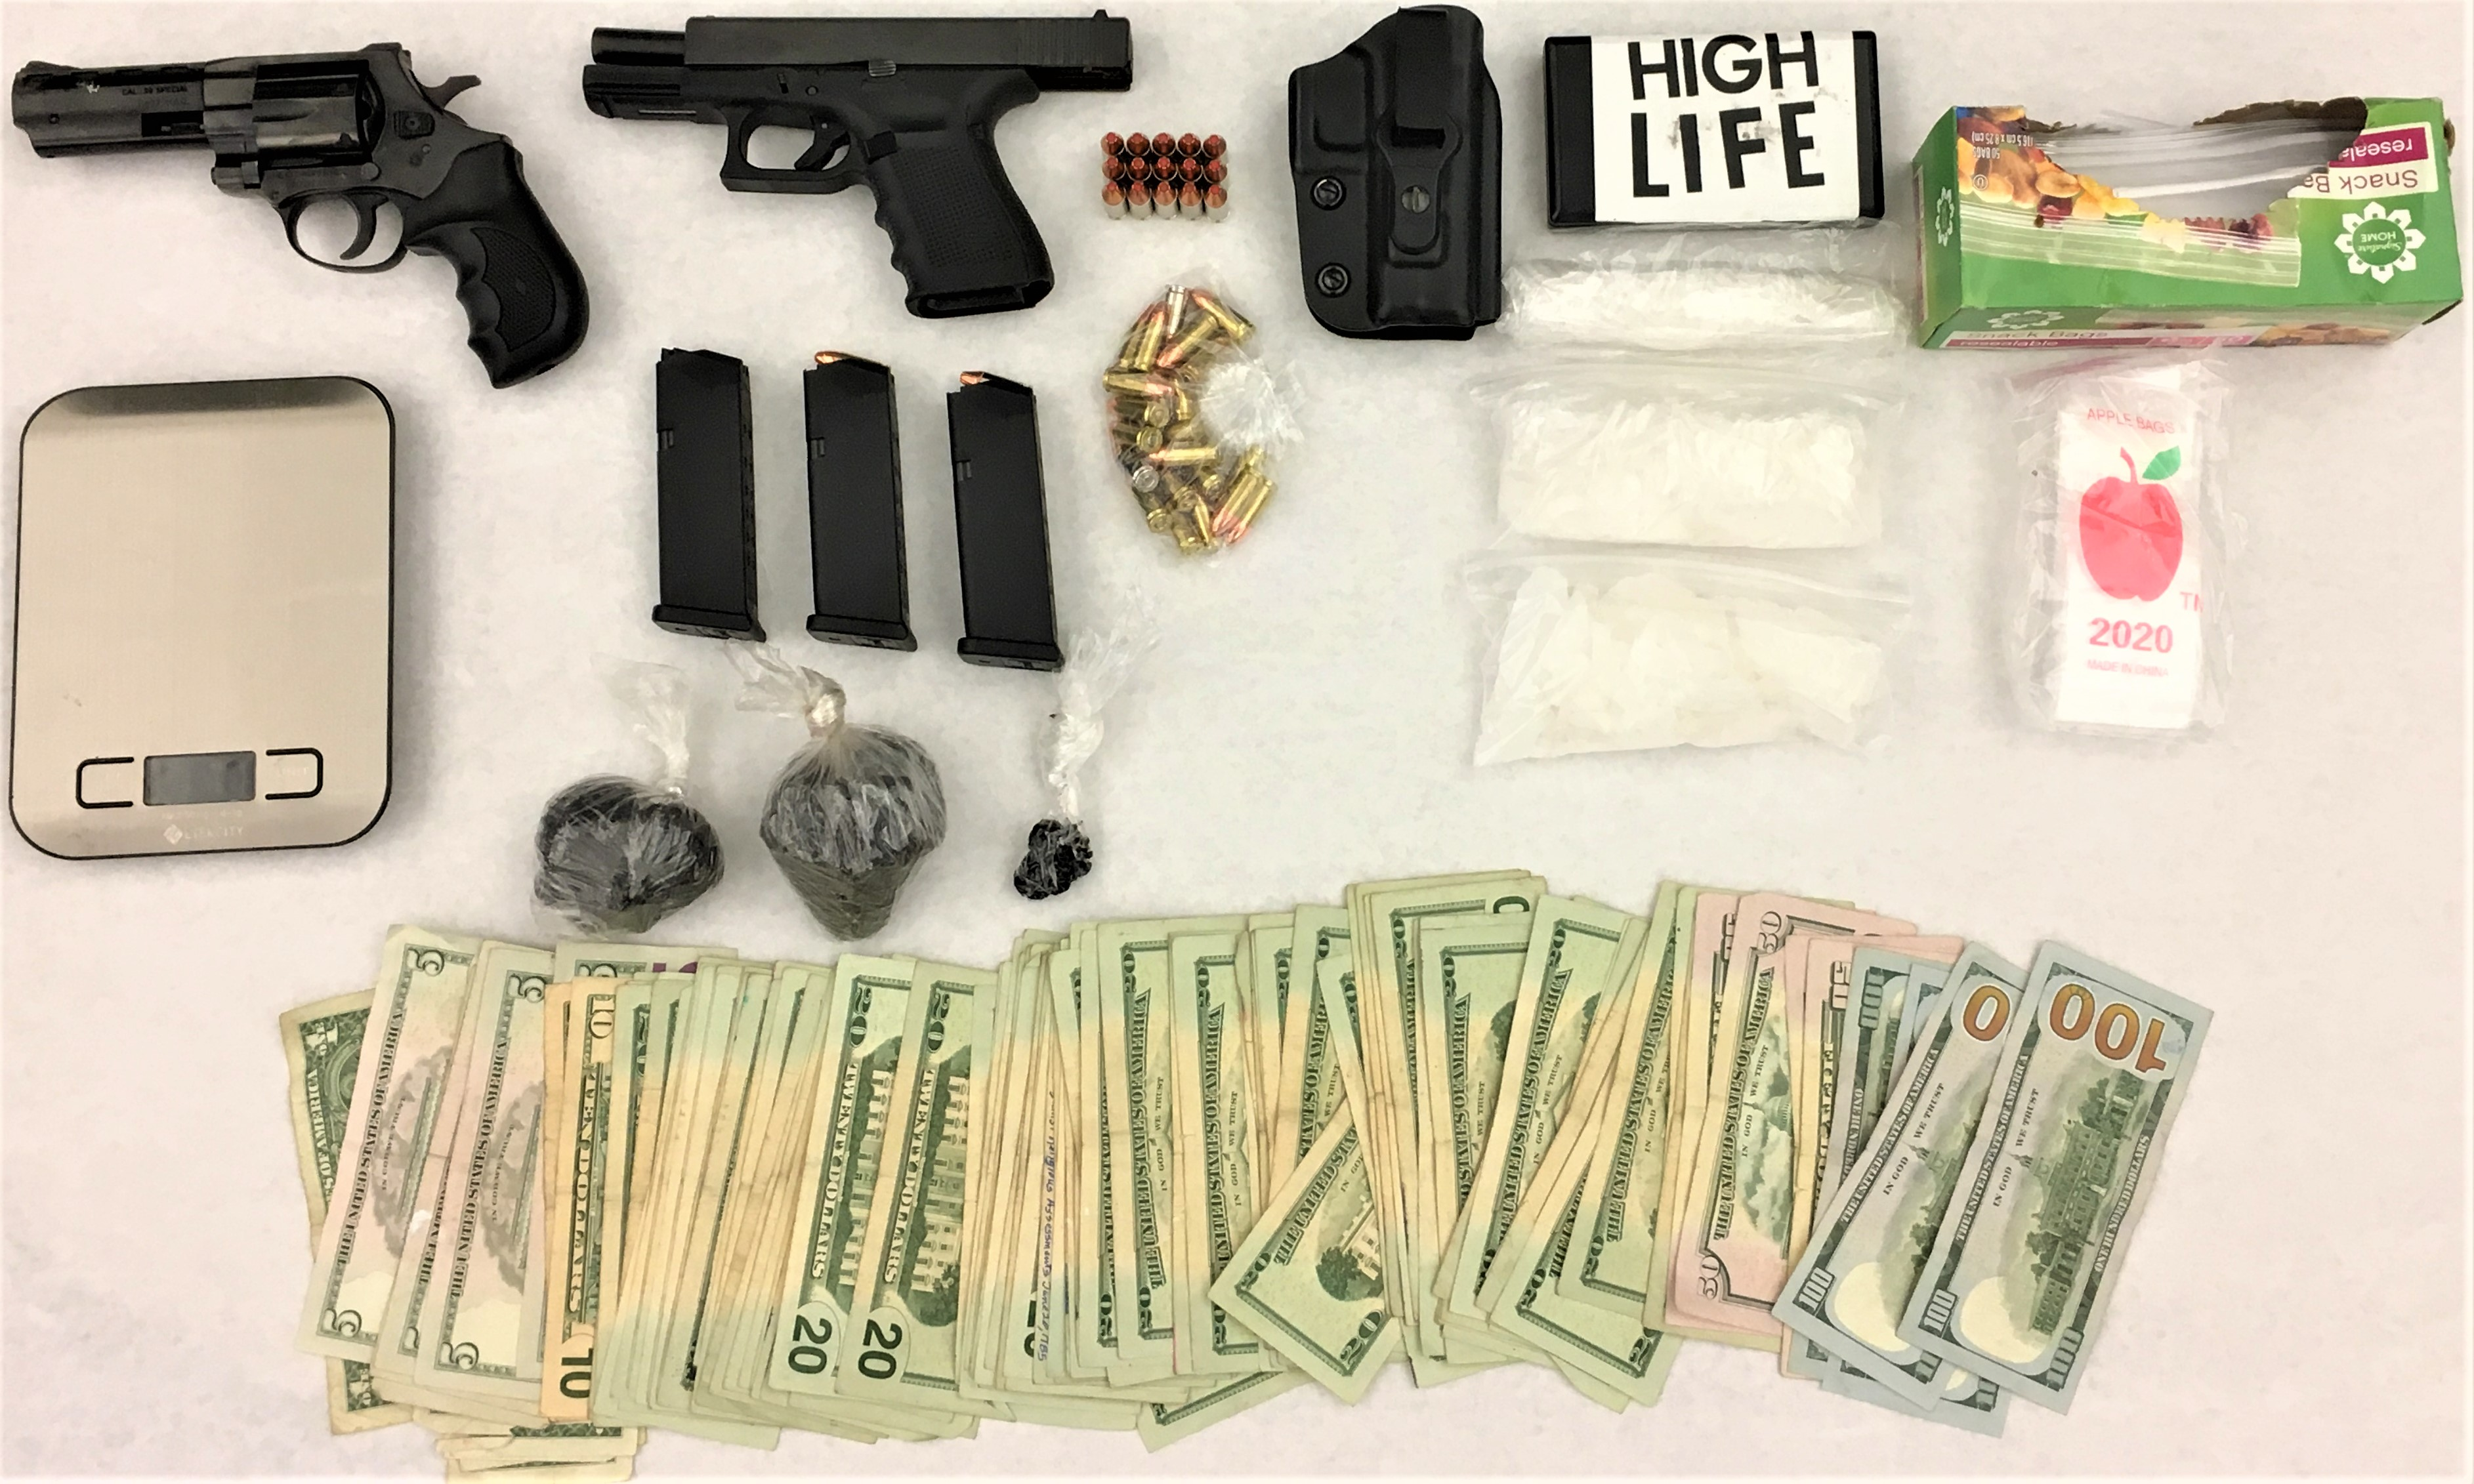 Suspected drug dealer arrested in Lloyd District with large cache, police say